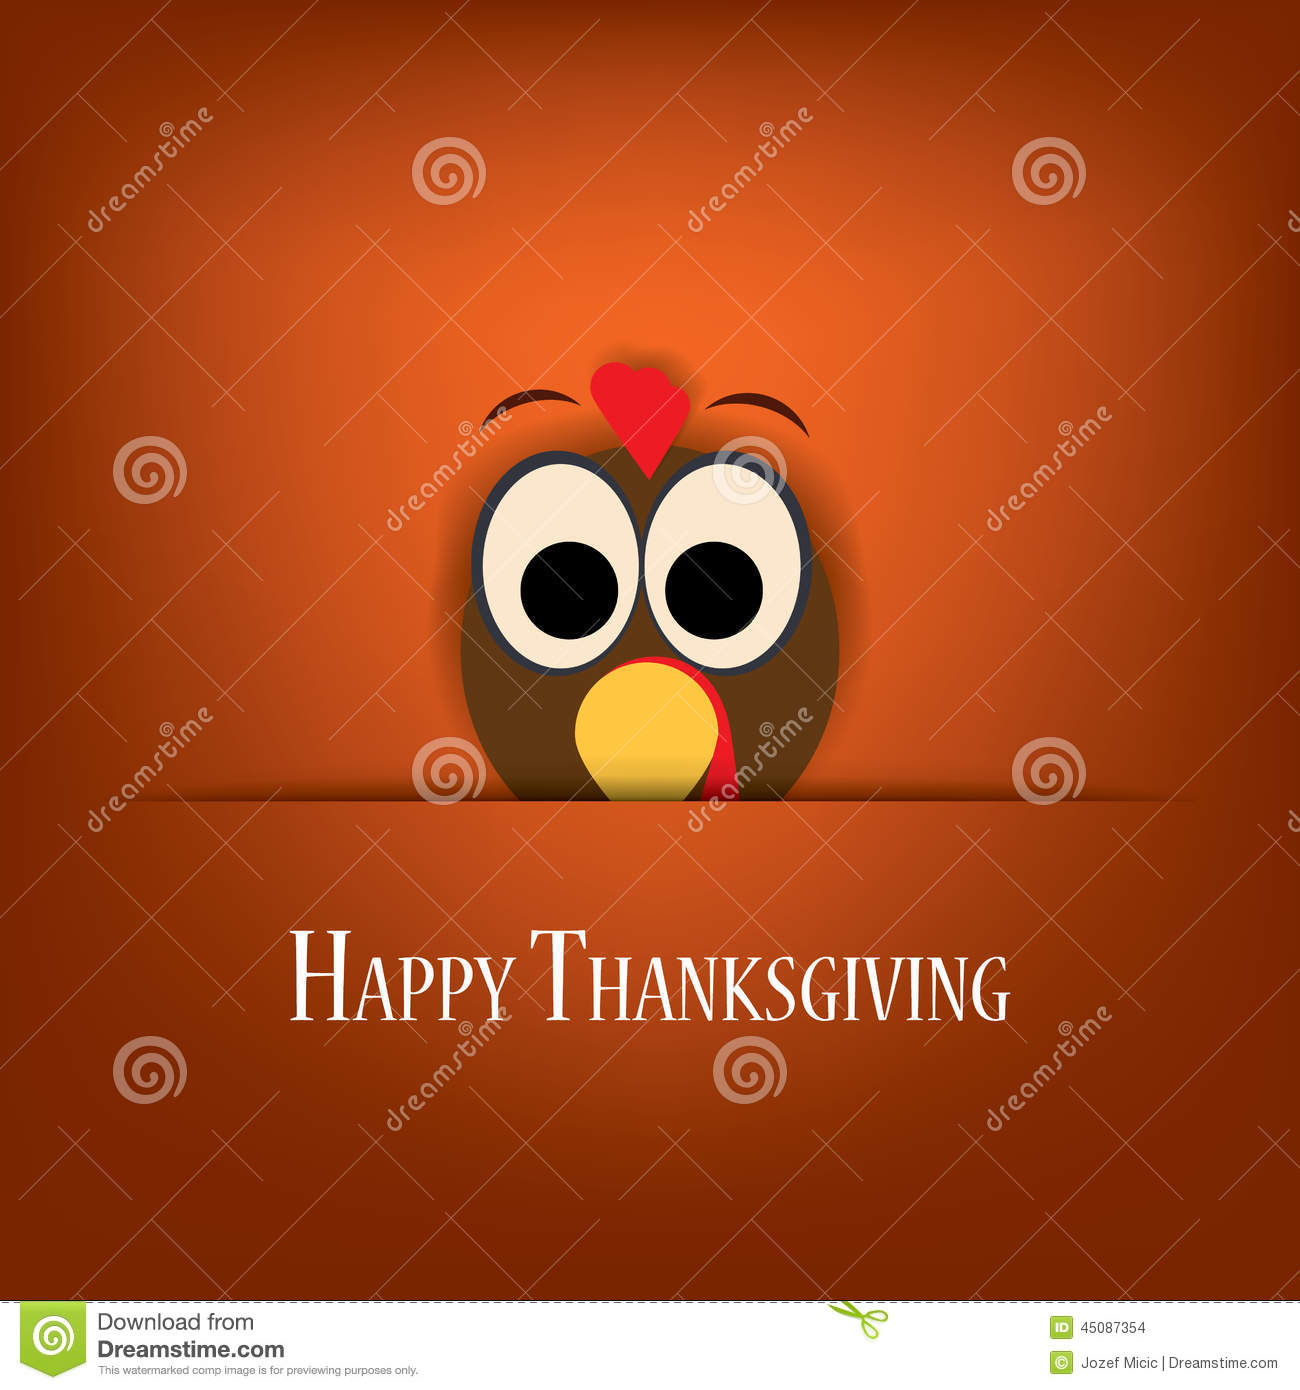 Thanksgiving card vector design with traditional